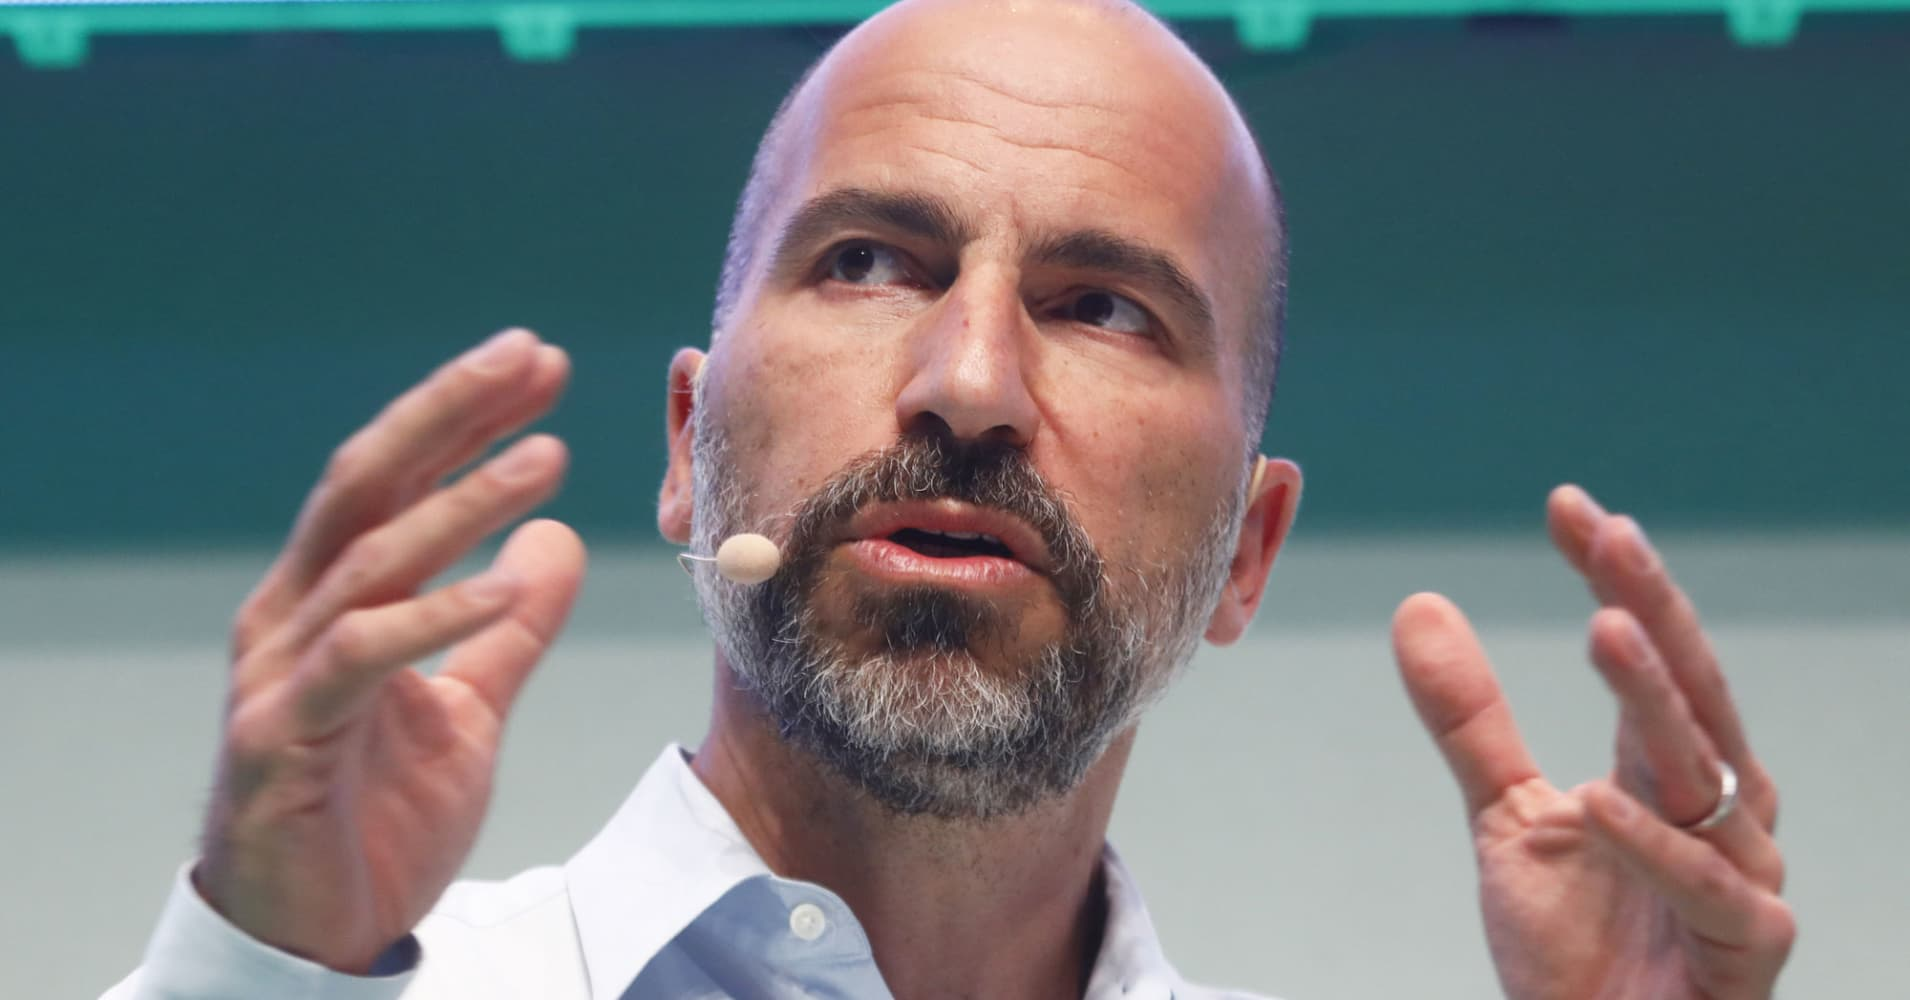 Uber CEO: What scares me the most is how much the company depends on me